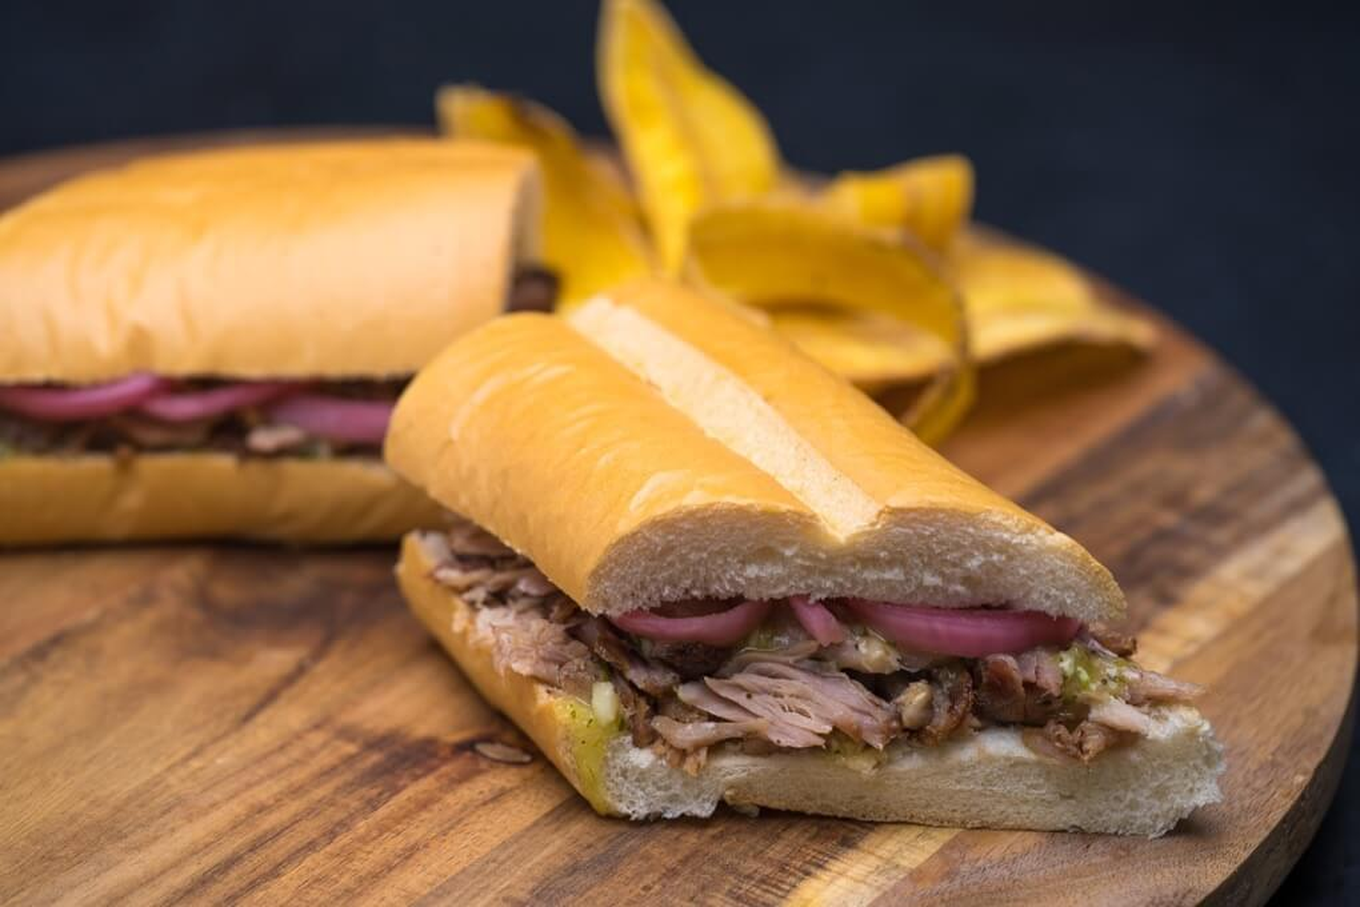 Pan con Lechon (Roasted Pork Sandwich)